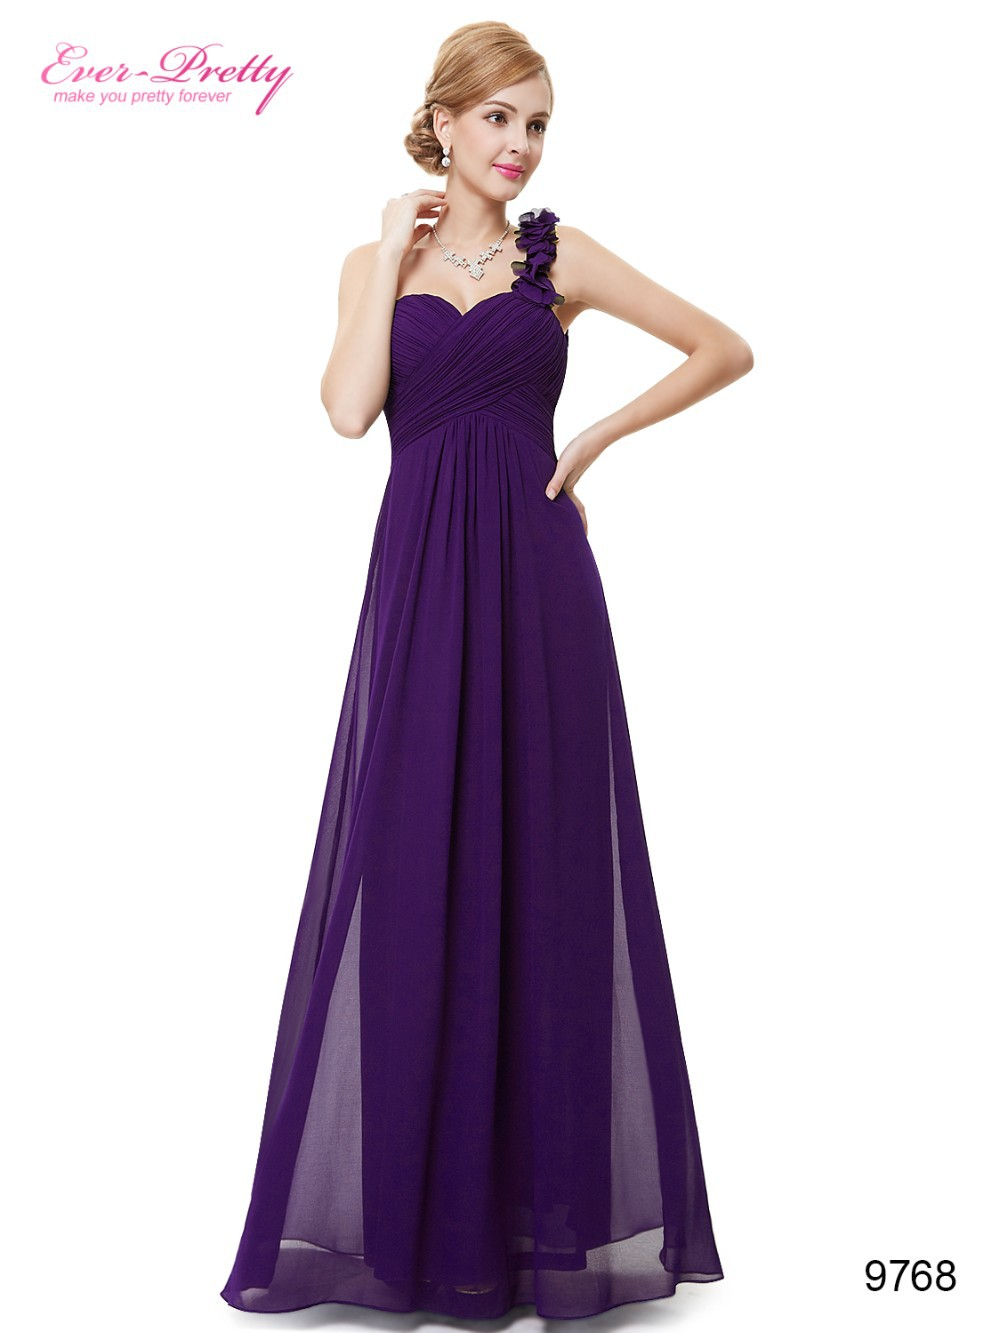 Online buy wholesale dessy bridesmaid dress from china dessy wedding bridesmaid dresses ever pretty ep09768 fashion women flower one shoulder chiffon padded long bridesmaid dresses ombrellifo Images